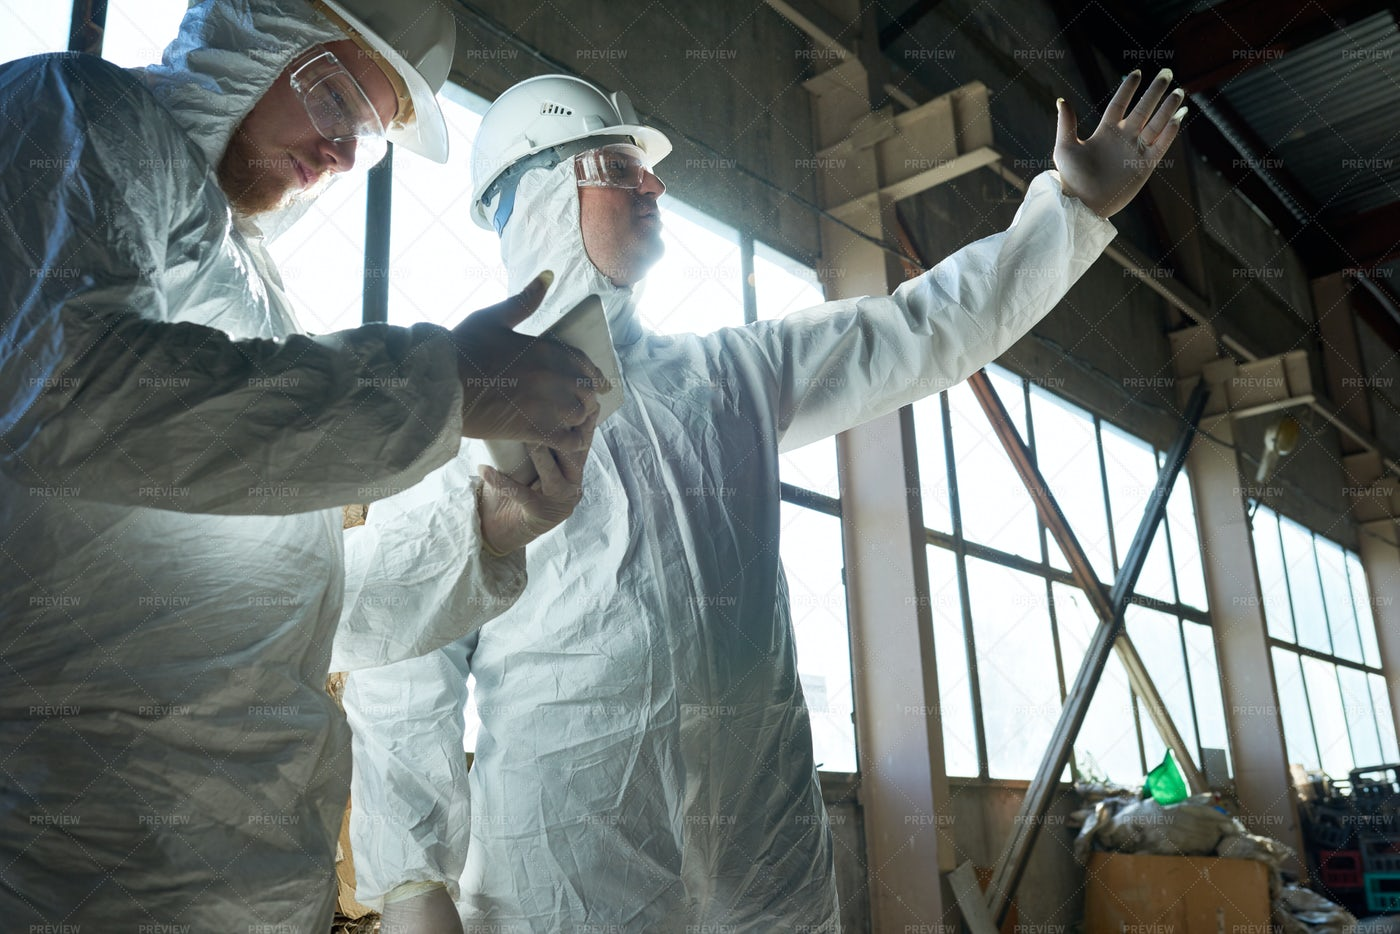 Workers In Protective Suits At...: Stock Photos